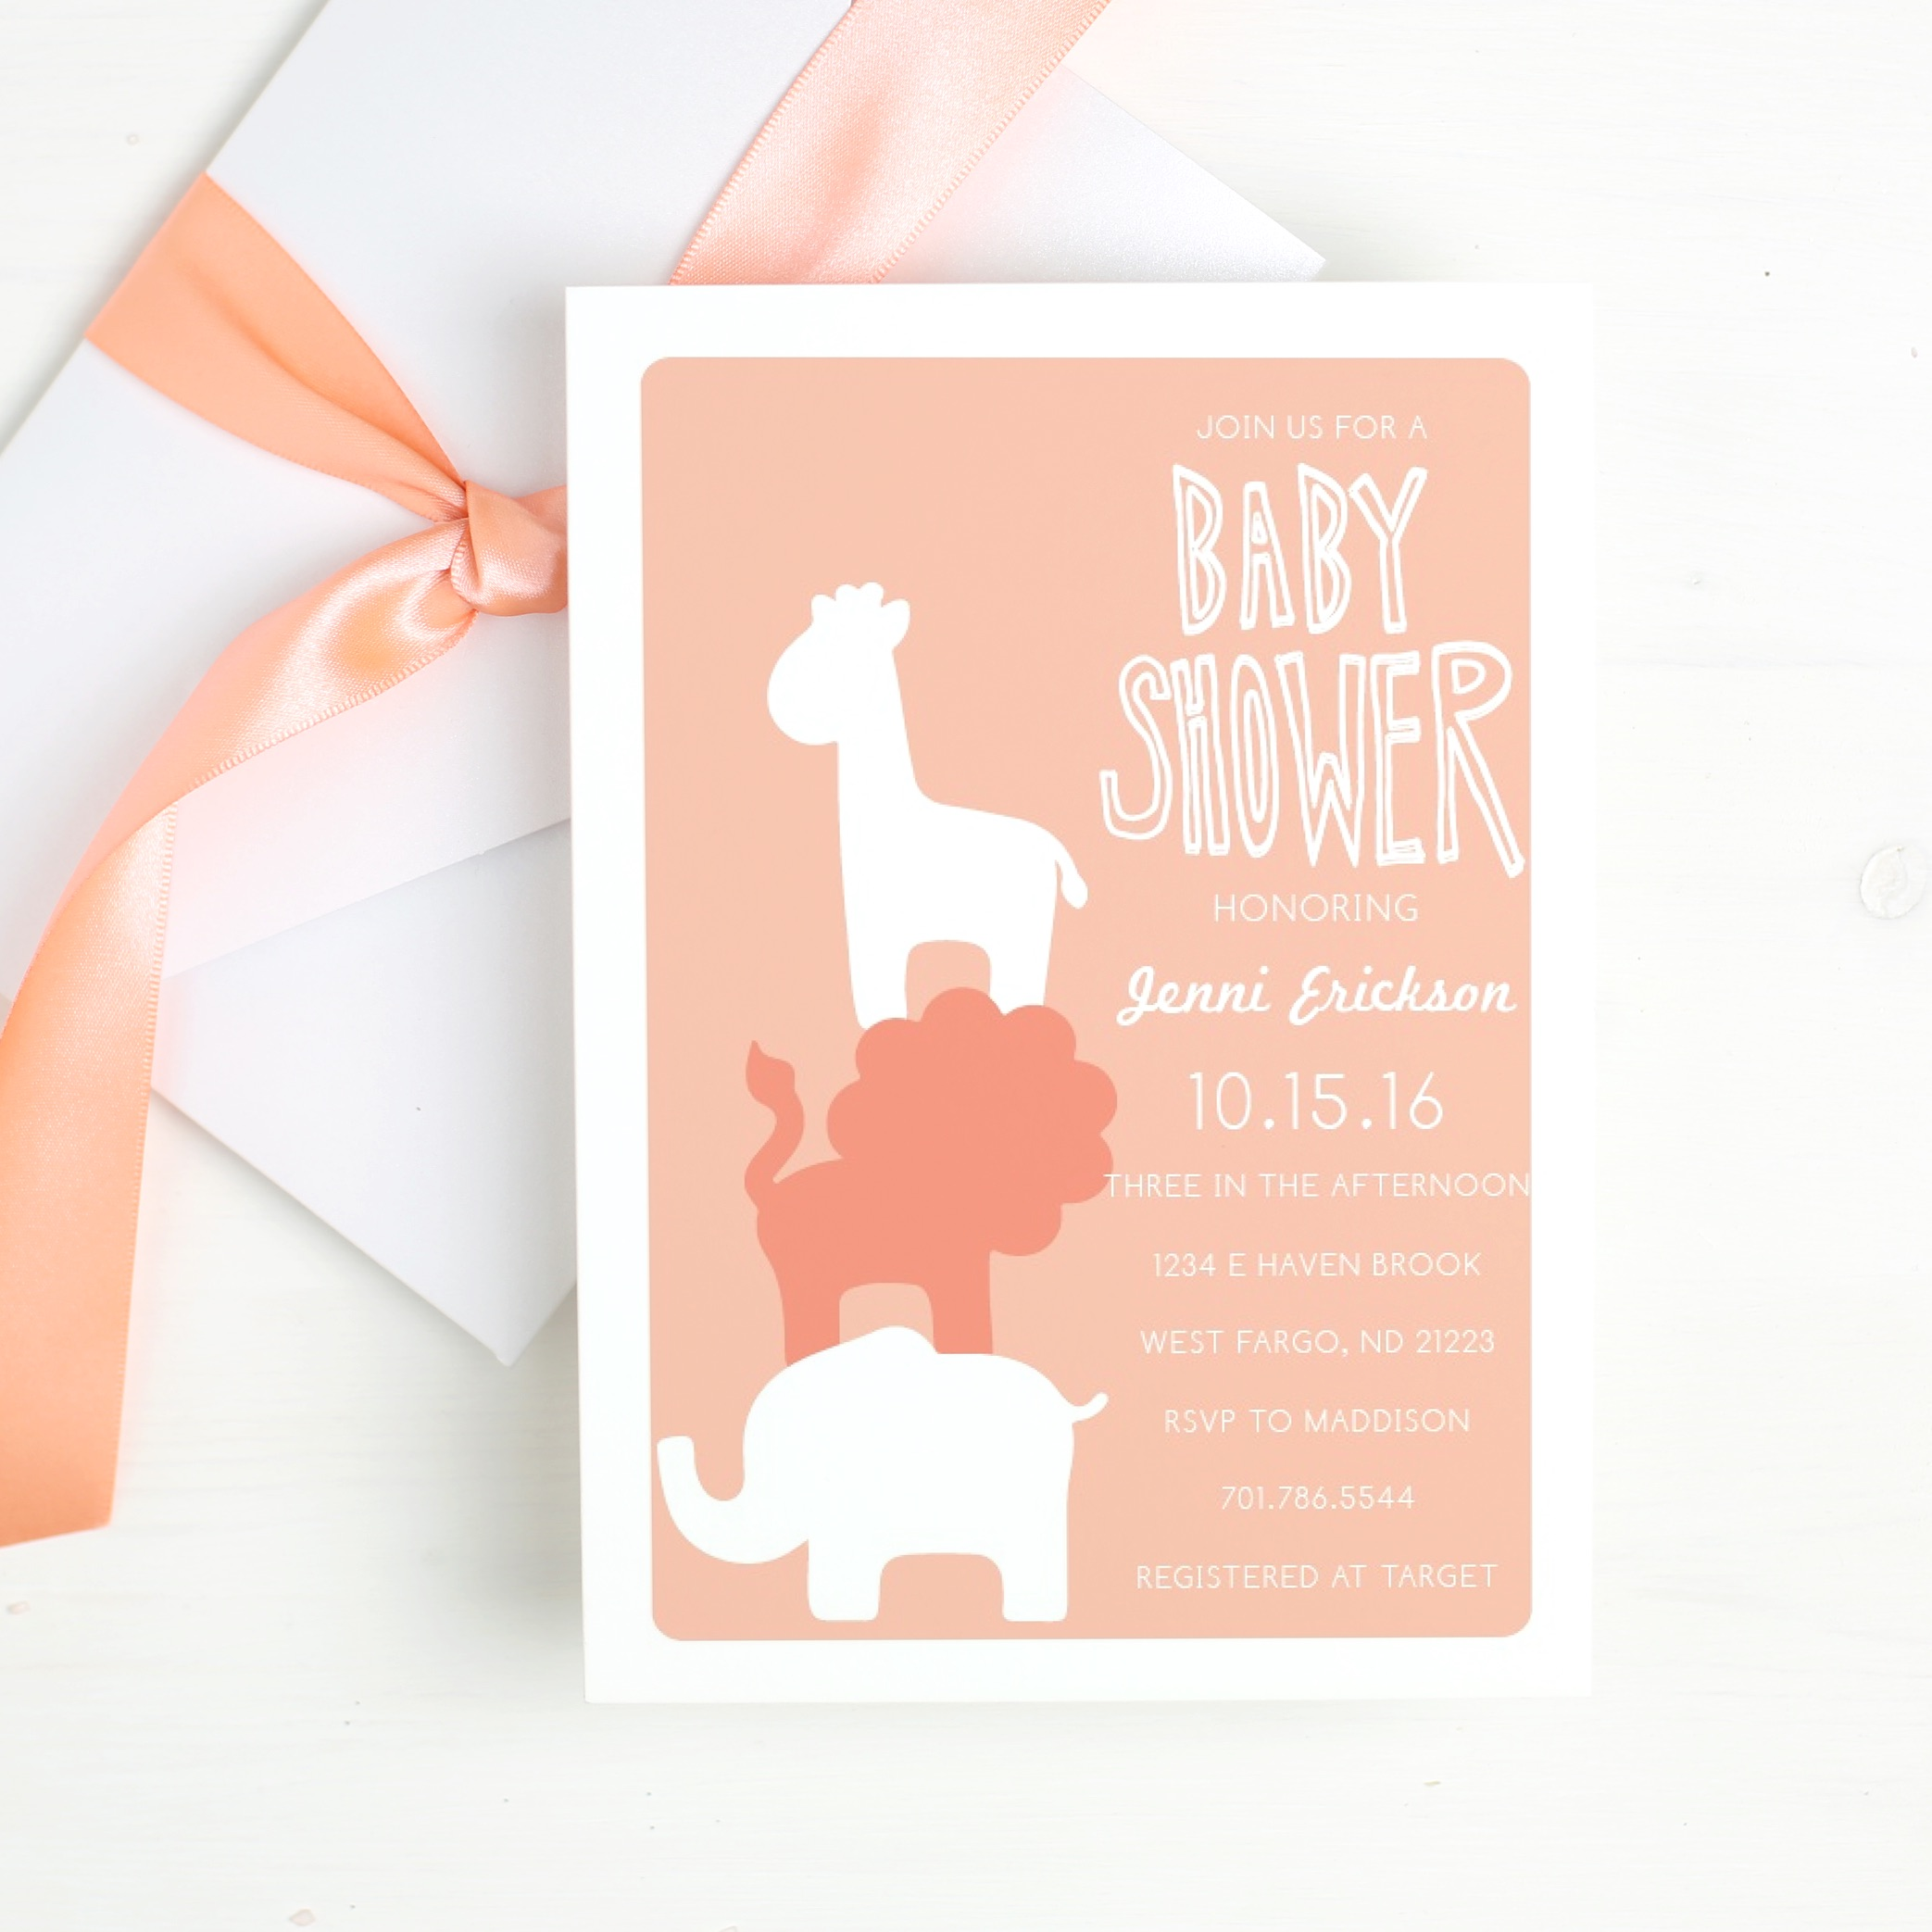 Basic Invite Safari Themed Baby Shower Invitations | Picture of Baby Shower invitation with elephant, lion & giraffe